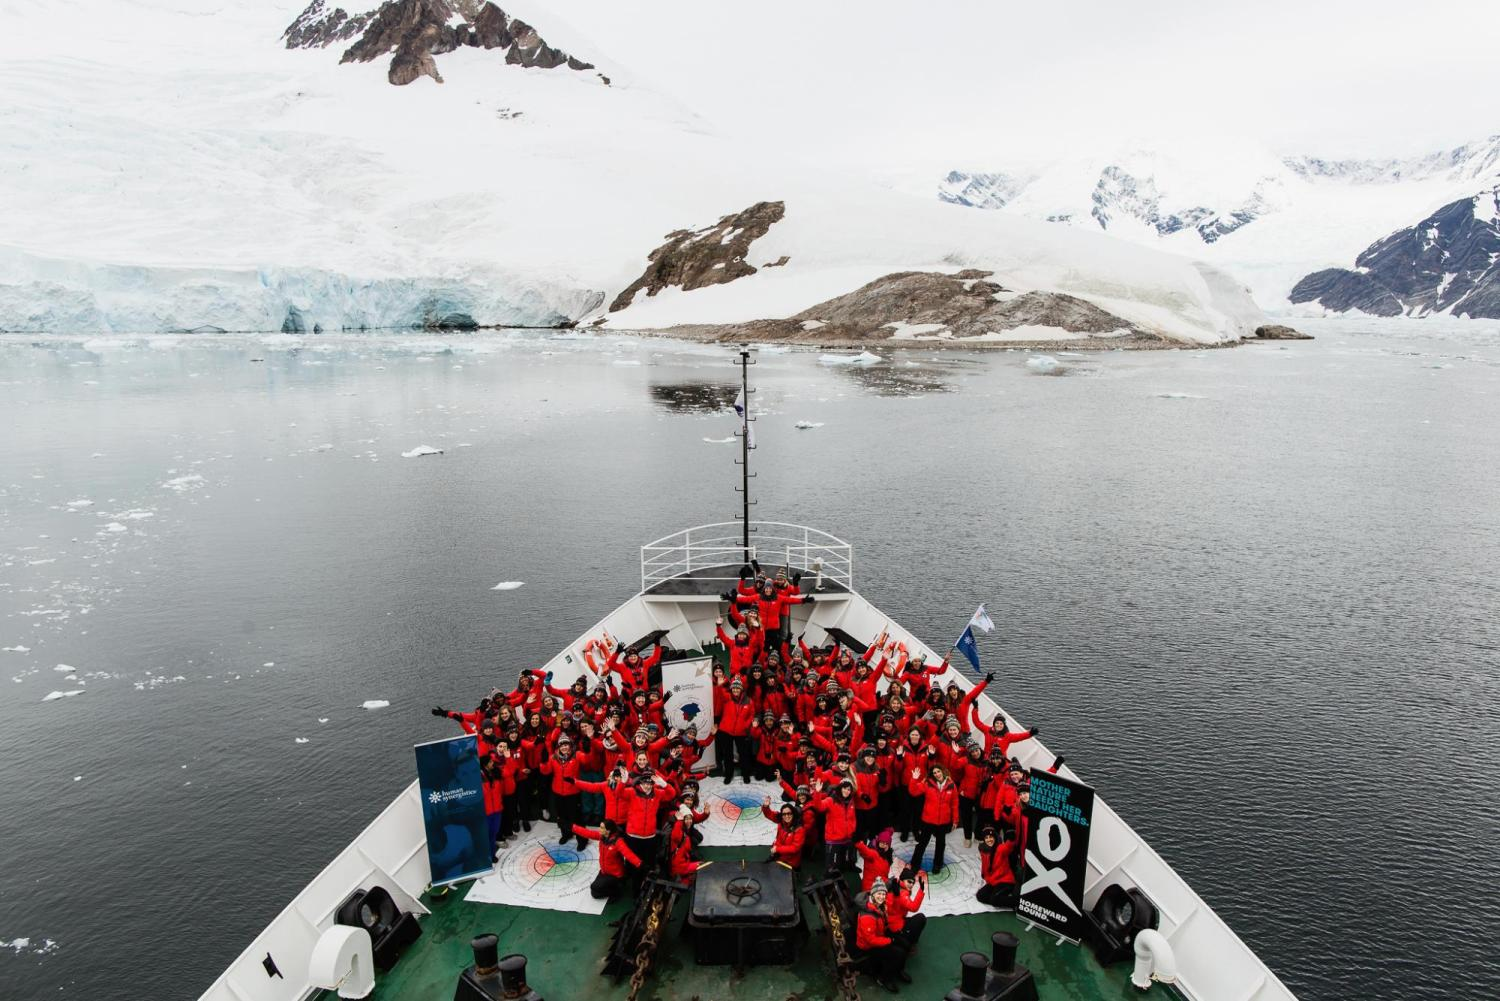 Homeword Bound women group together on a ship in Antartica.